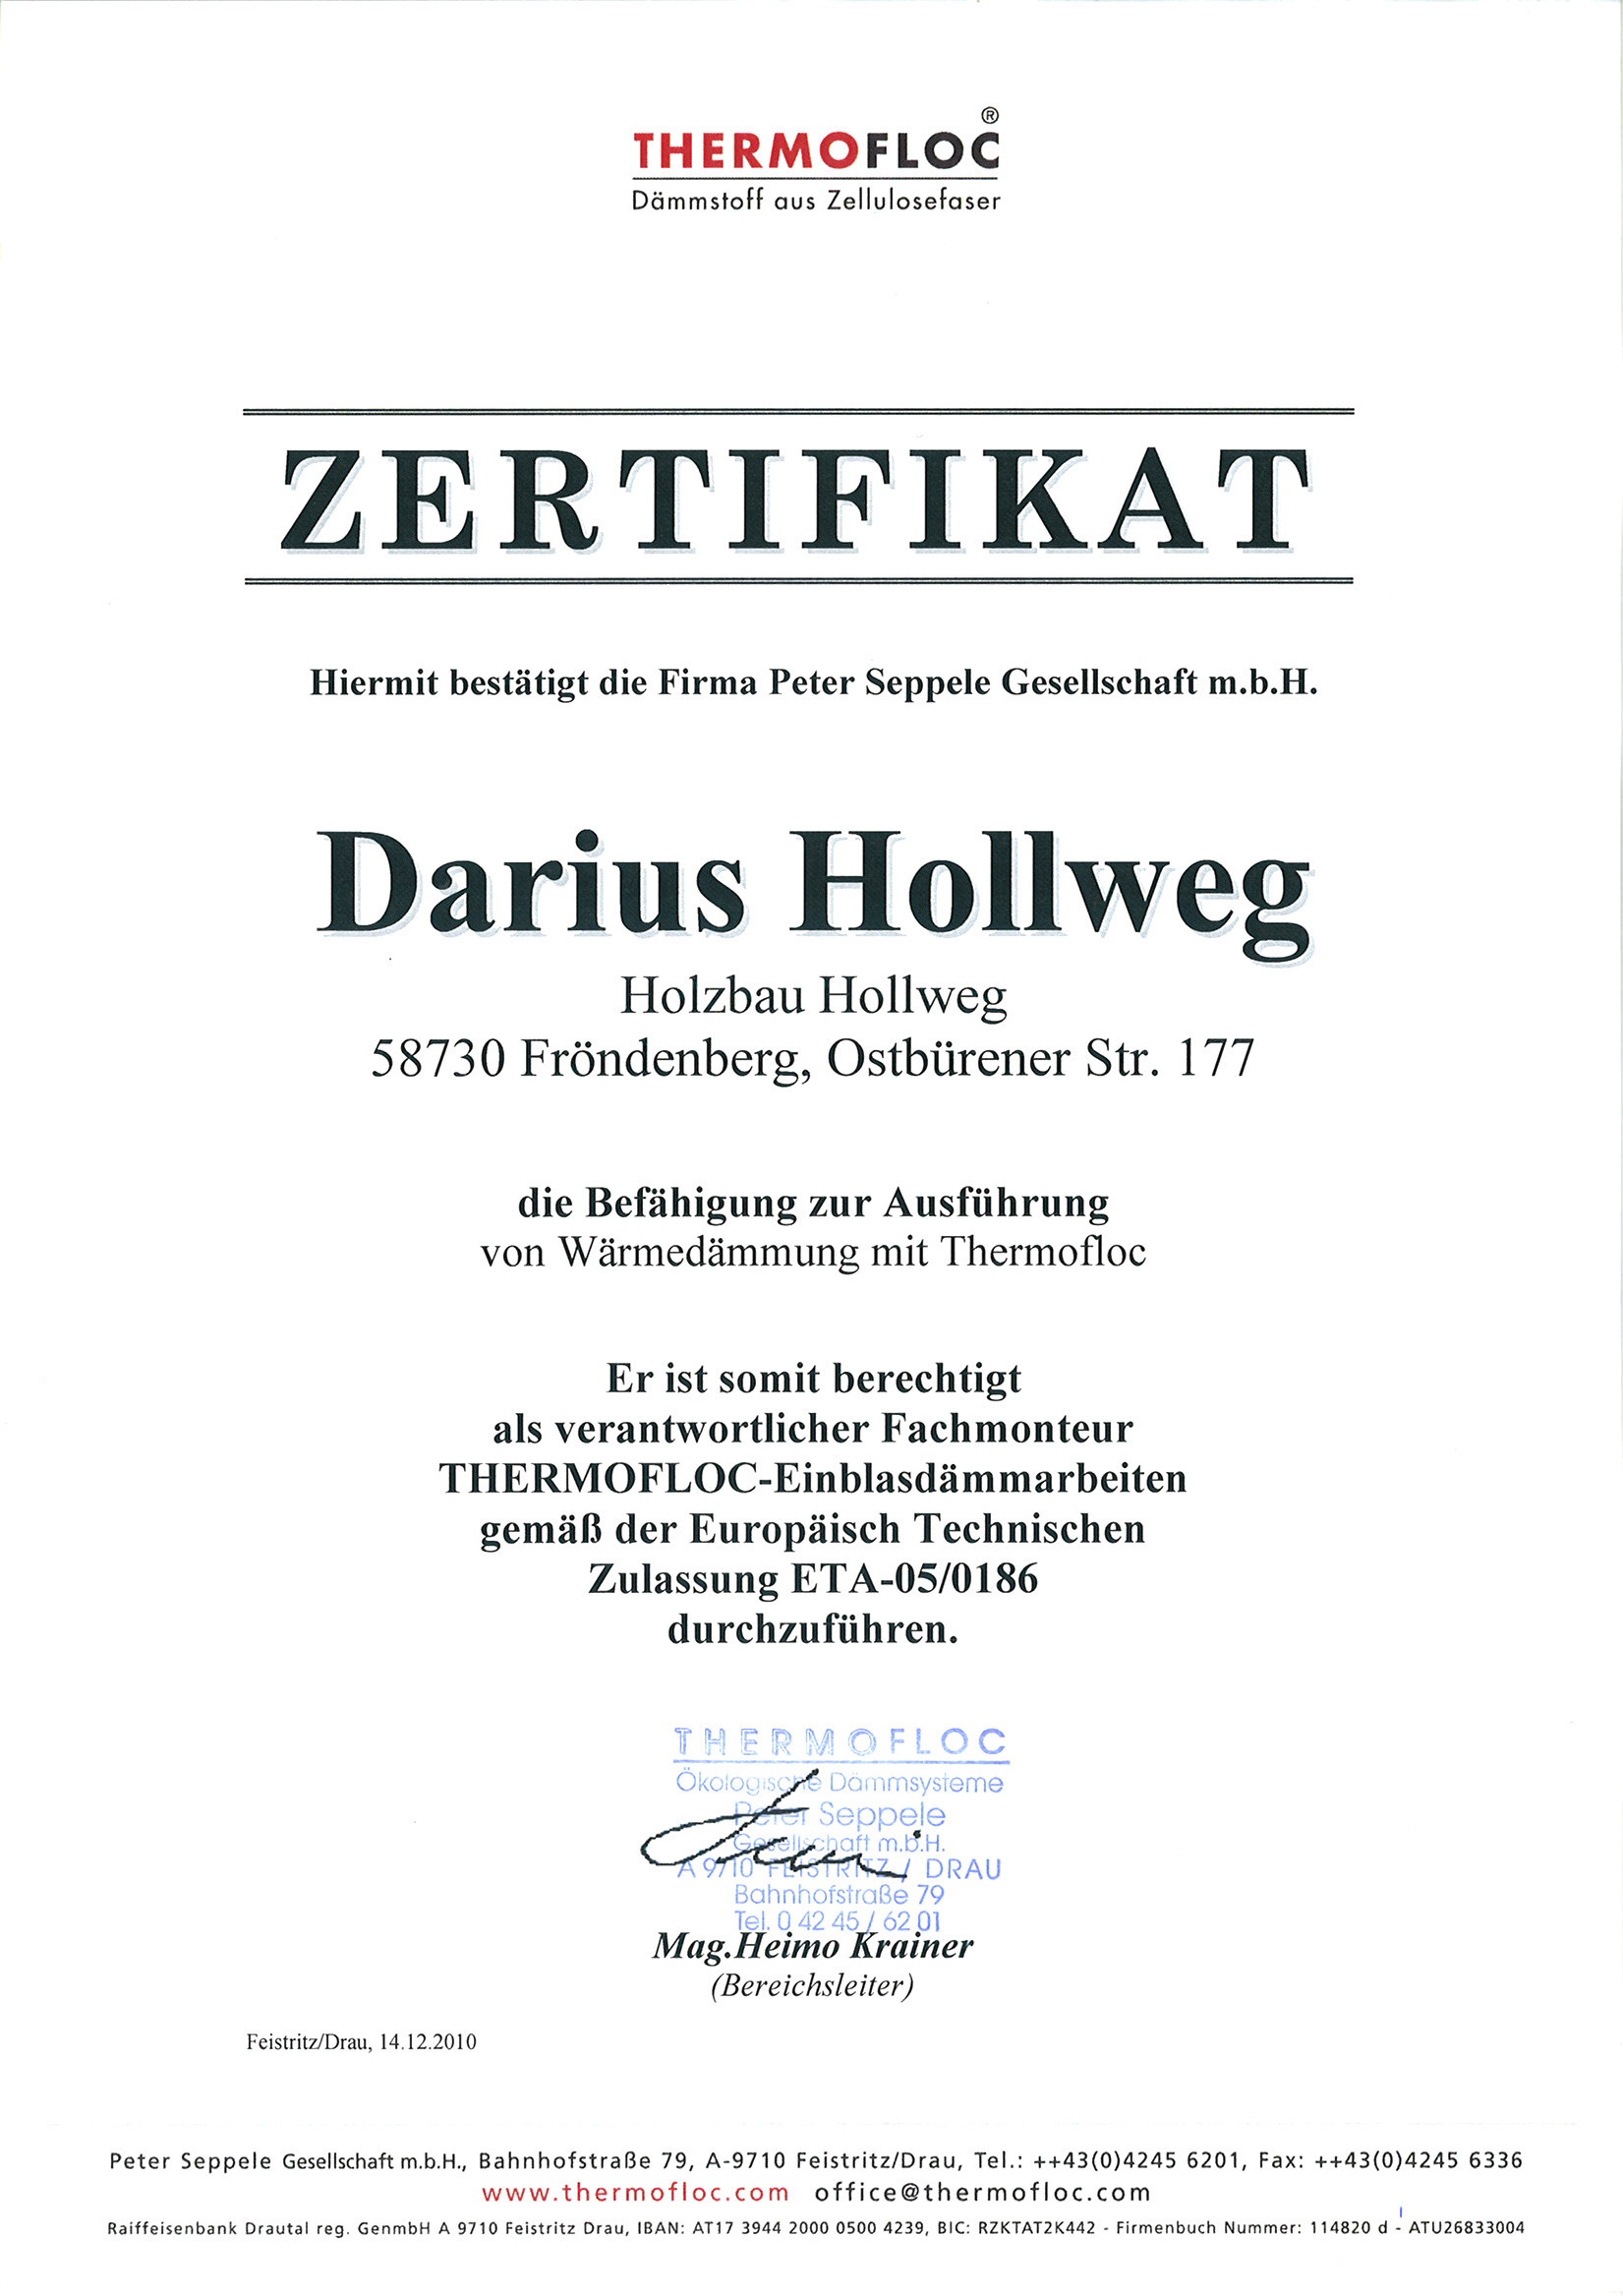 Zertifikat-Hollweg-Thermofloc